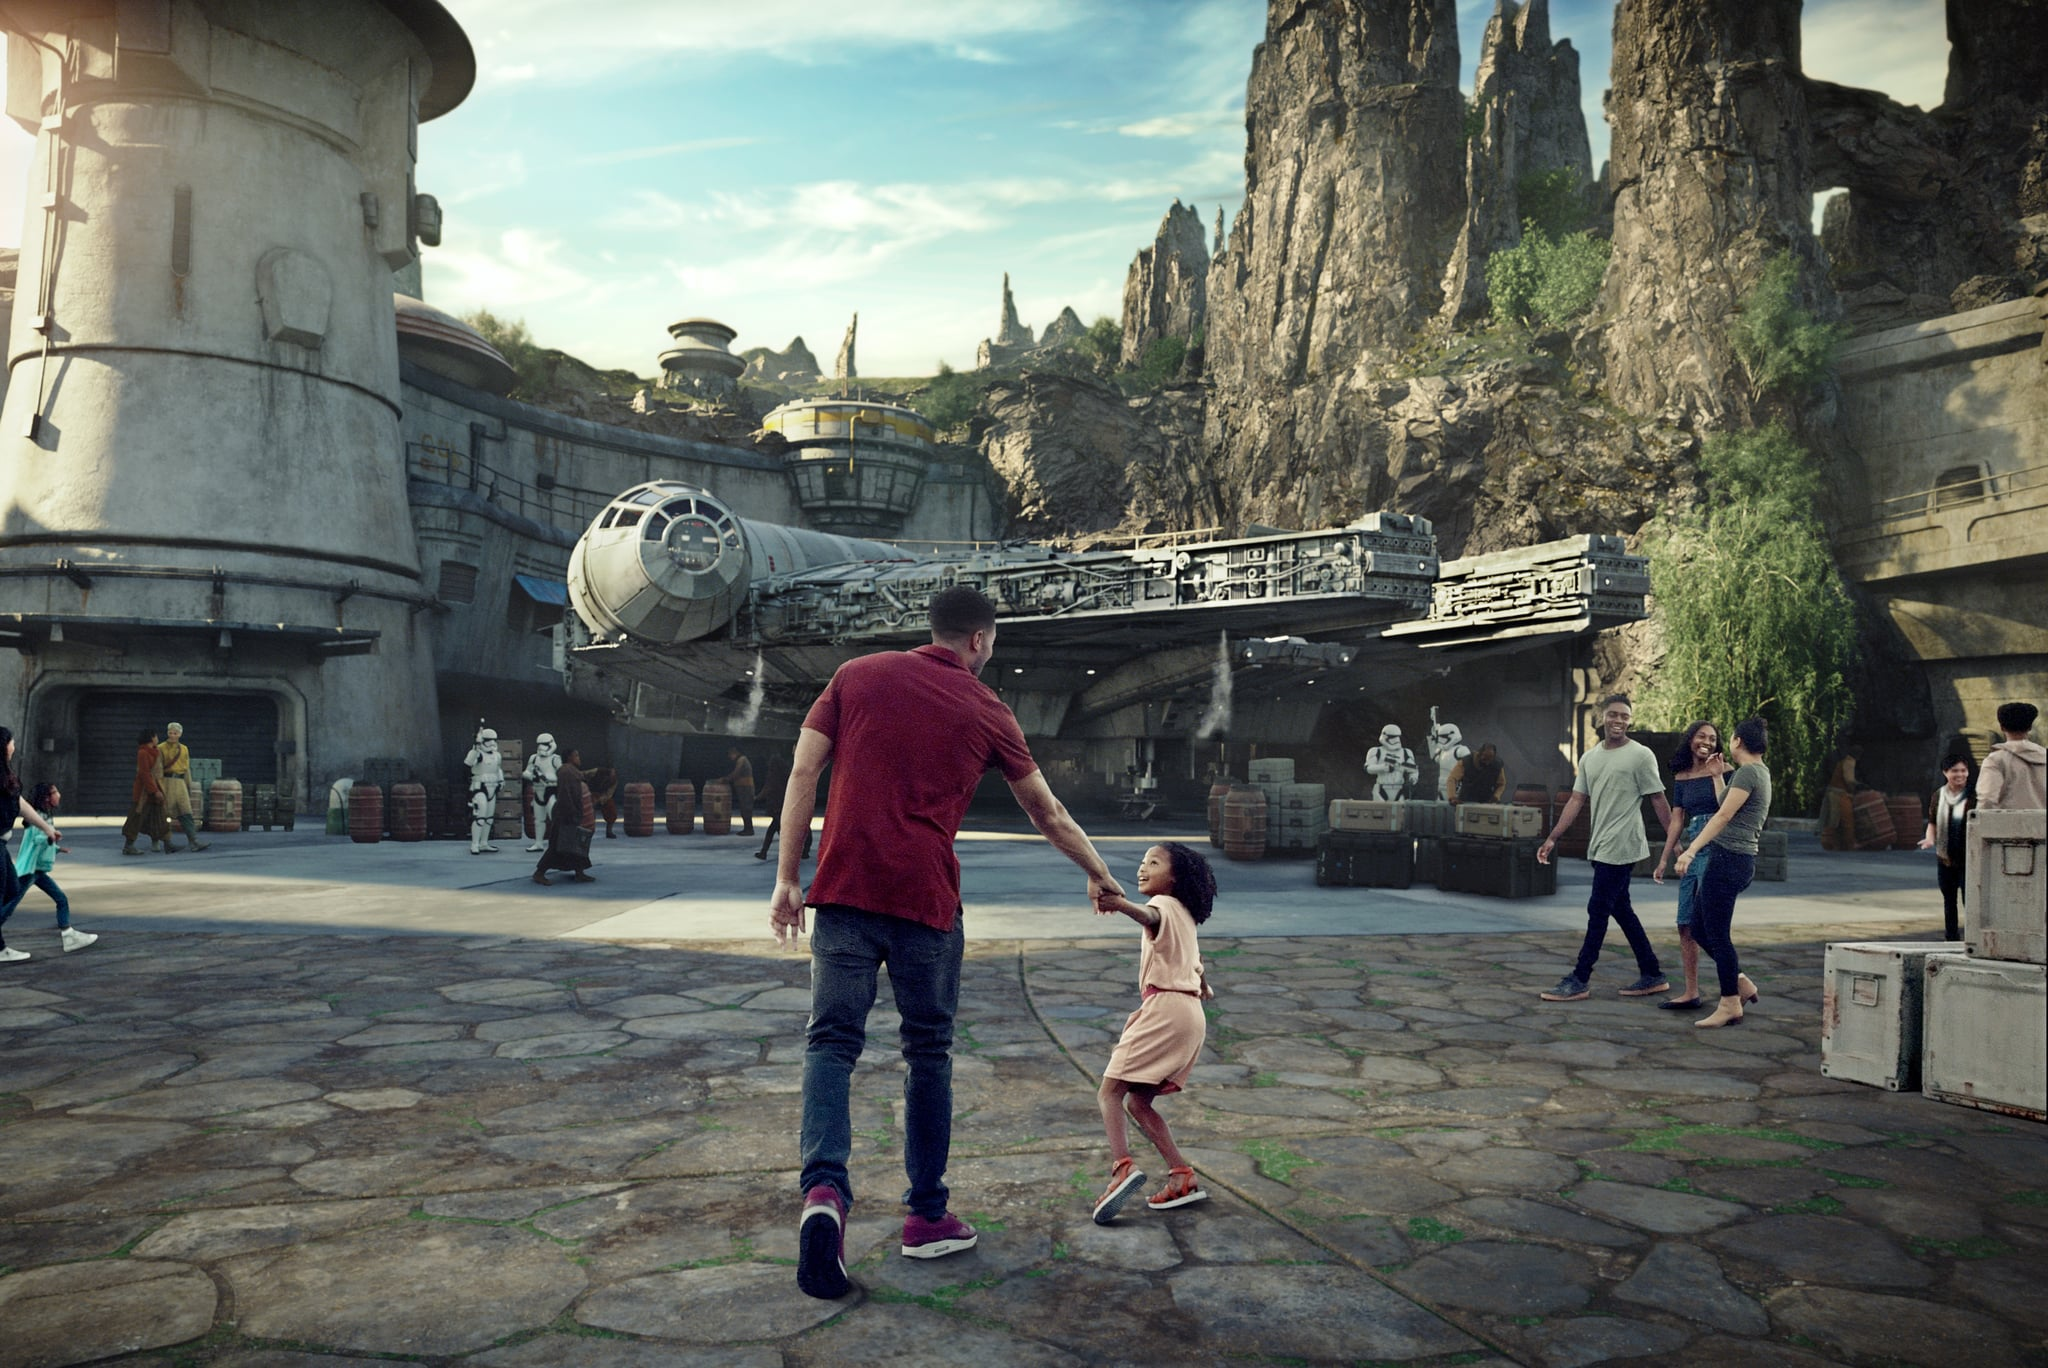 Star Wars: Galaxys Edge will open May 31, 2019, at Disneyland Park in Anaheim, California, and August 29, 2019, at Disney's Hollywood Studios in Lake Buena Vista, Florida. At 14 acres each, Star Wars: Galaxys Edge will be Disney's largest single-themed land expansions ever, transporting guests to live their own Star Wars adventures in Black Spire Outpost, a village on the remote planet of Batuu, full of unique sights, sounds, smells and tastes. Guests can become part of the story as they sample galactic food and beverages, explore an intriguing collection of merchant shops and take the controls of the most famous ship in the galaxy aboard Millennium Falcon: Smugglers Run. (Disney Parks)